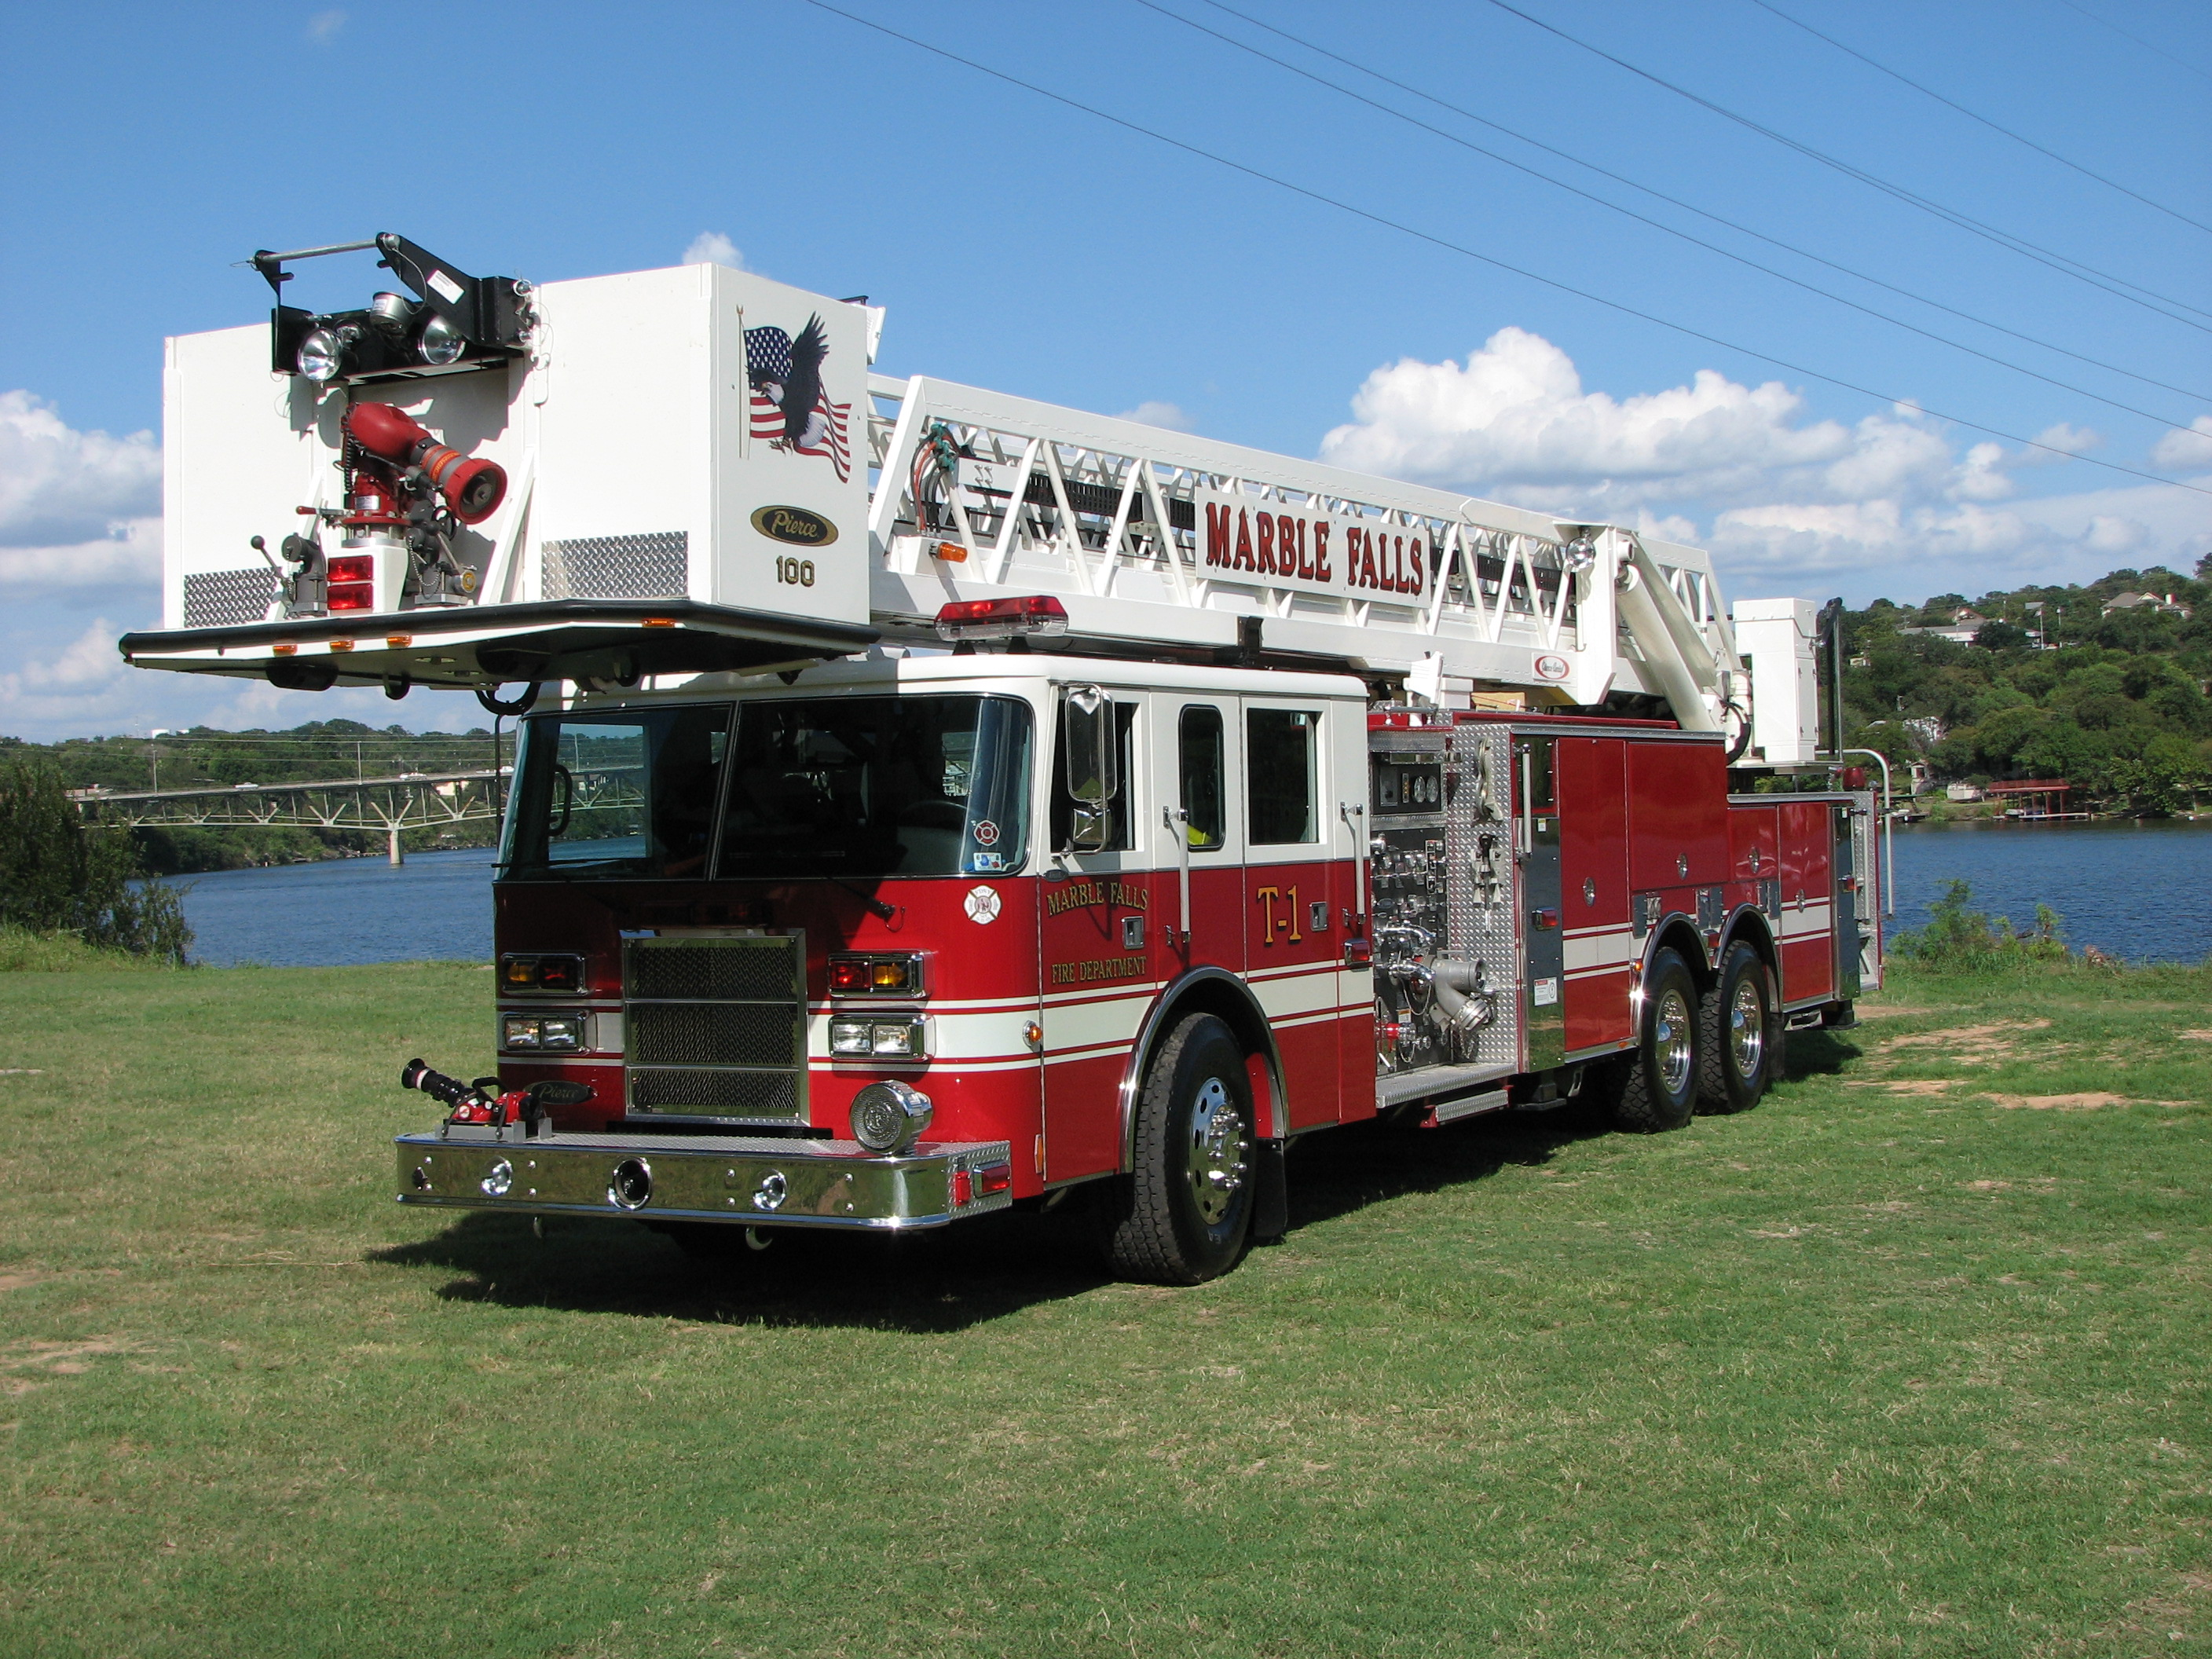 Truck One, a 300 gallon tank with a 100 foot aerial platform